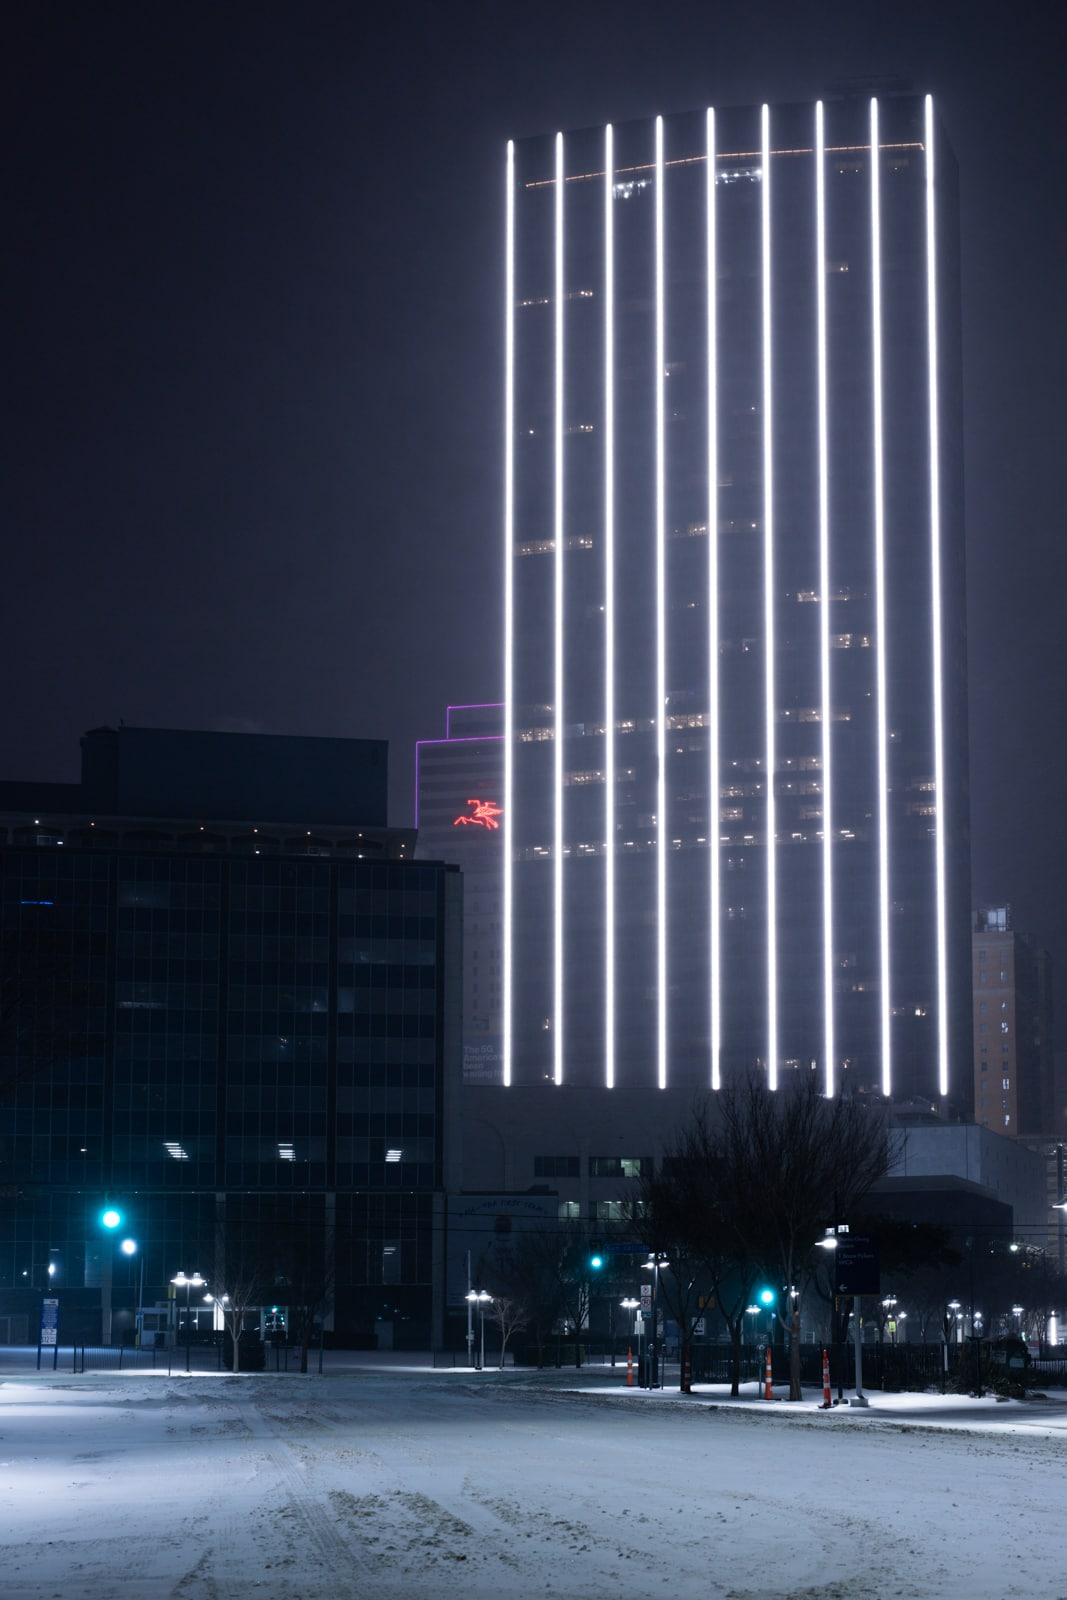 First National Bank Tower lights at night in the 2021 snowstorm